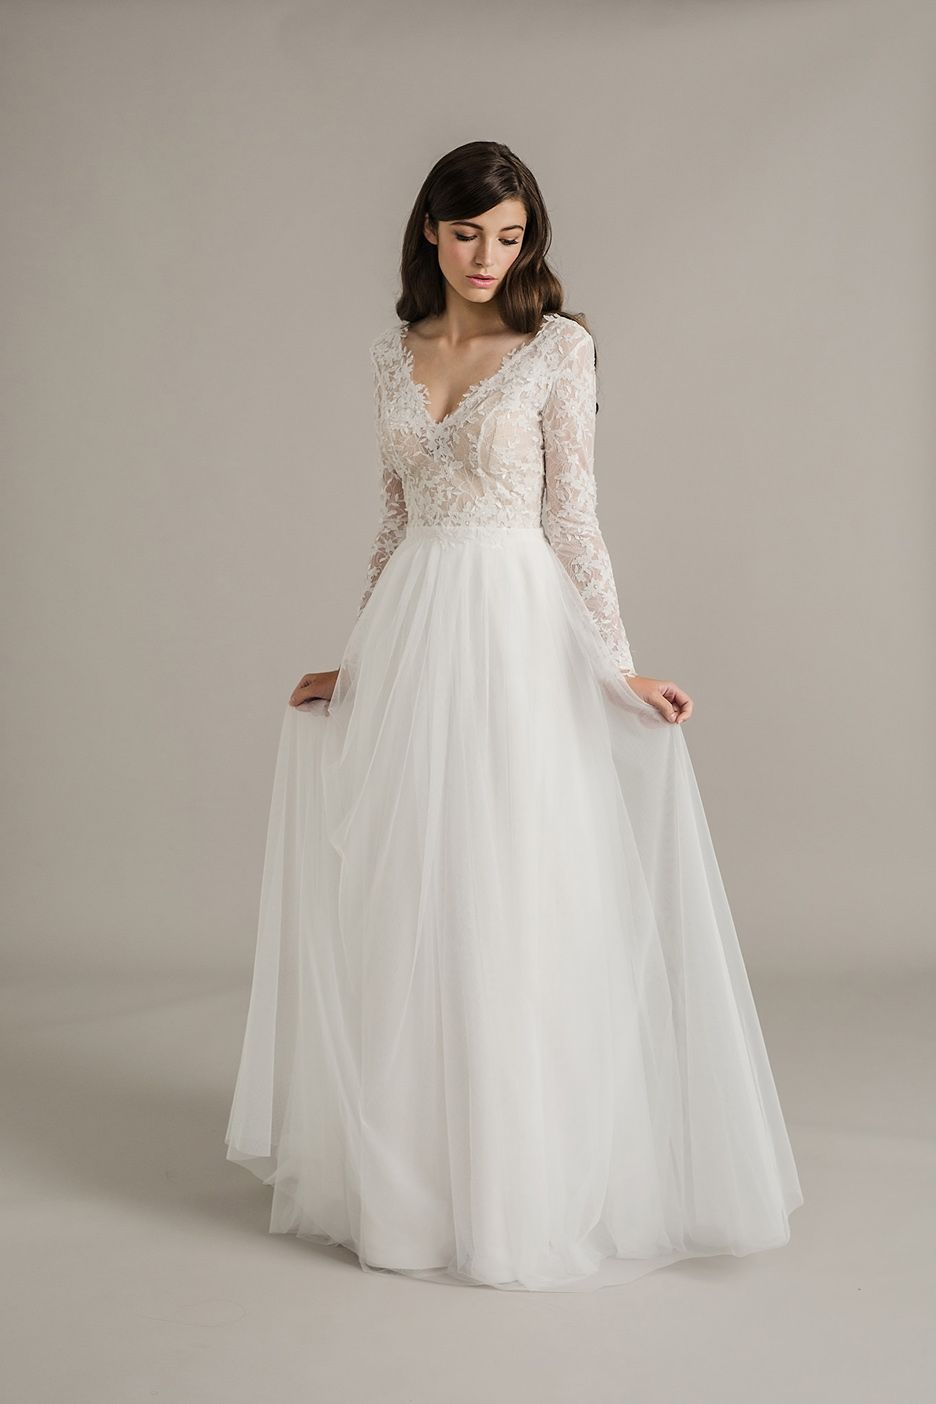 Genevieve wedding dress from sally eagle bridalus collection bride